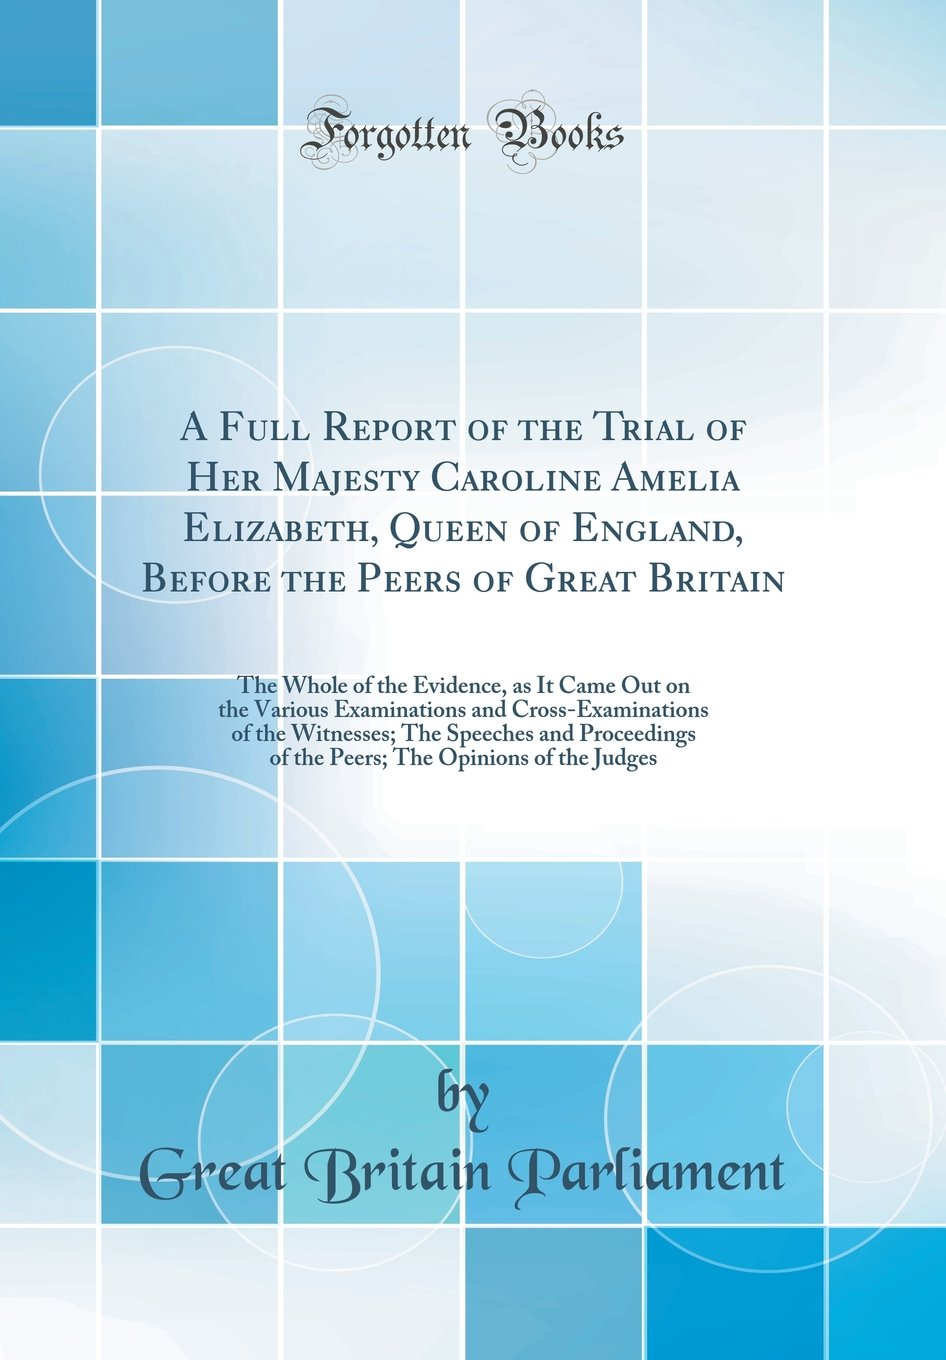 Download A Full Report of the Trial of Her Majesty Caroline Amelia Elizabeth, Queen of England, Before the Peers of Great Britain: The Whole of the Evidence, ... of the Witnesses; The Speeches and Proce pdf epub